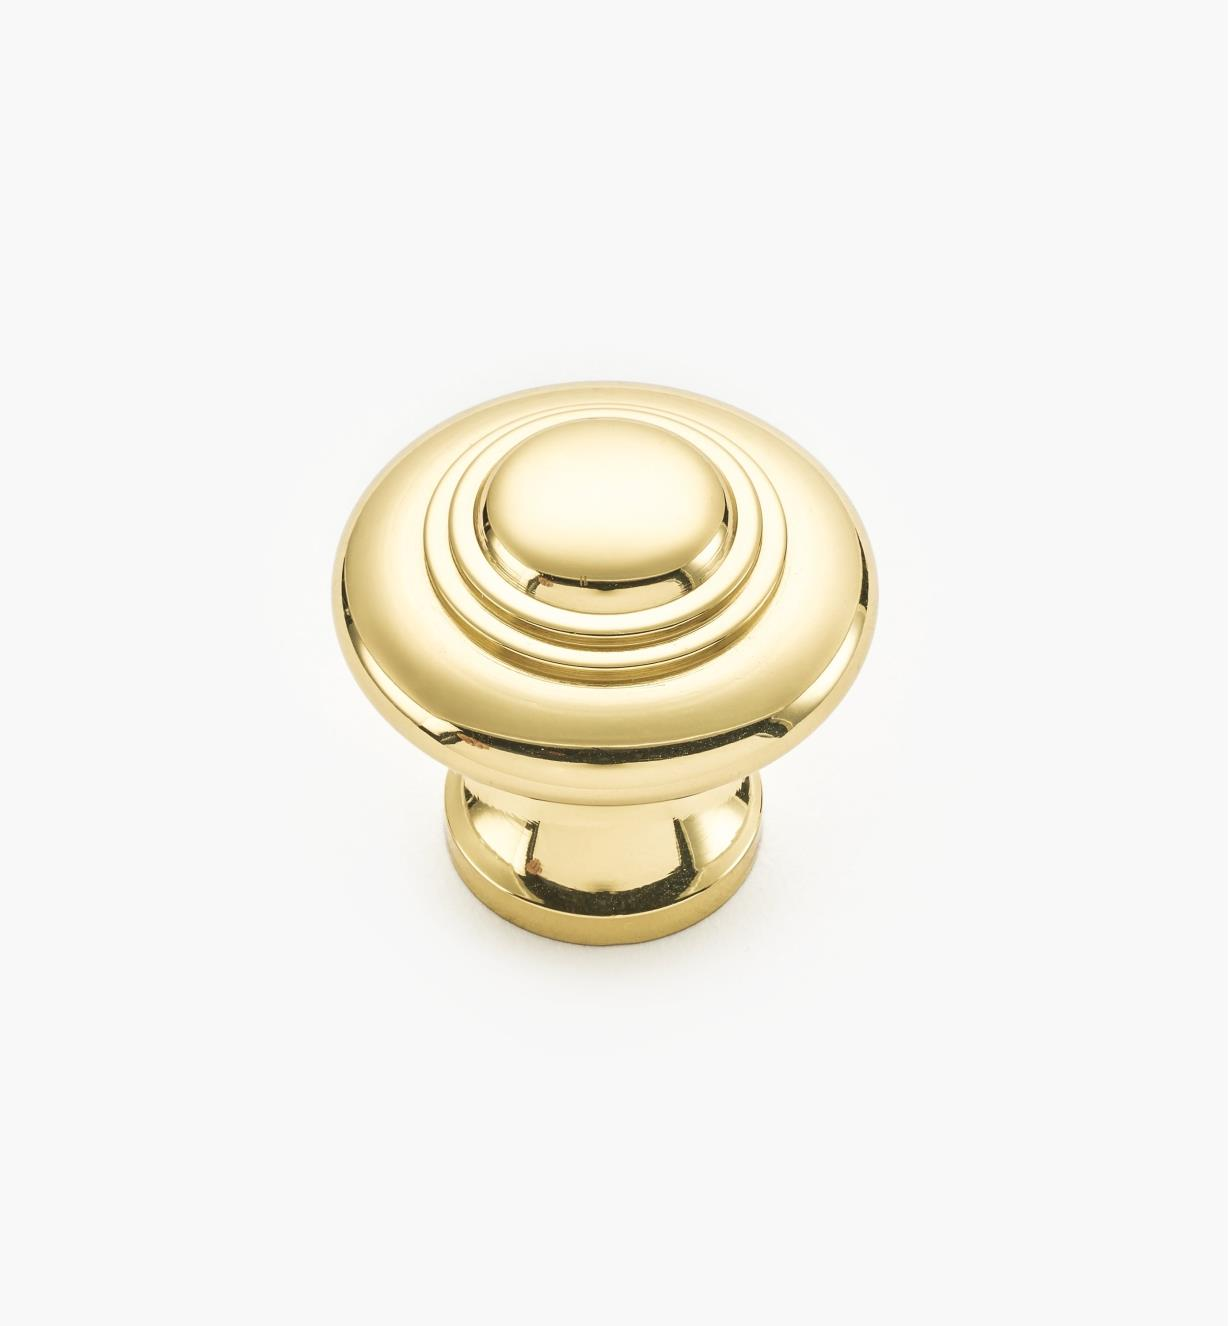 "02W1212 - 1 5/16"" x 1 1/4"" Polished Brass Ring Knob"